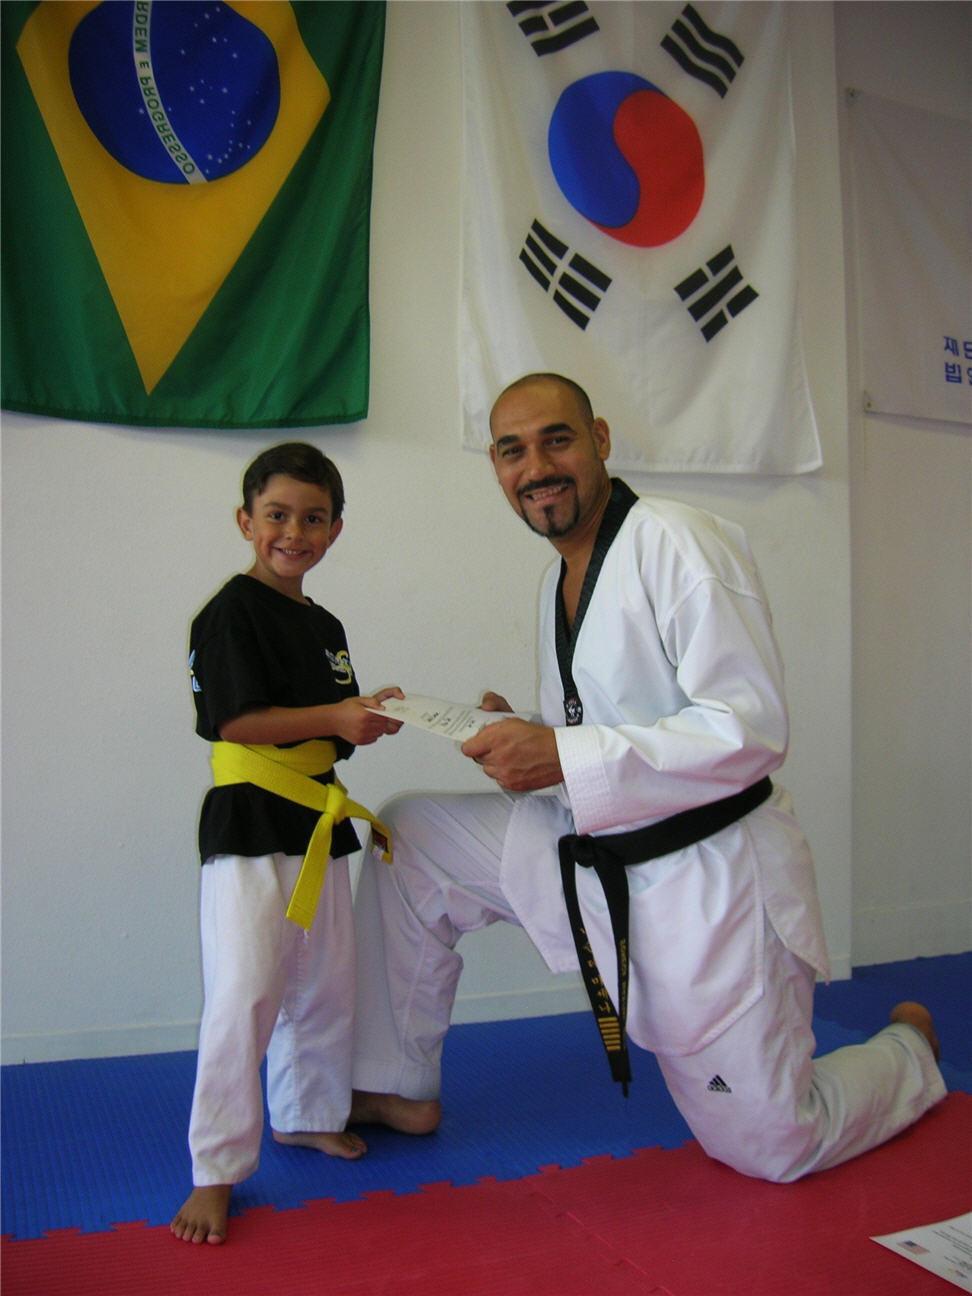 soneca-martial-arts-taekwondo-with-master-nilson-demacena